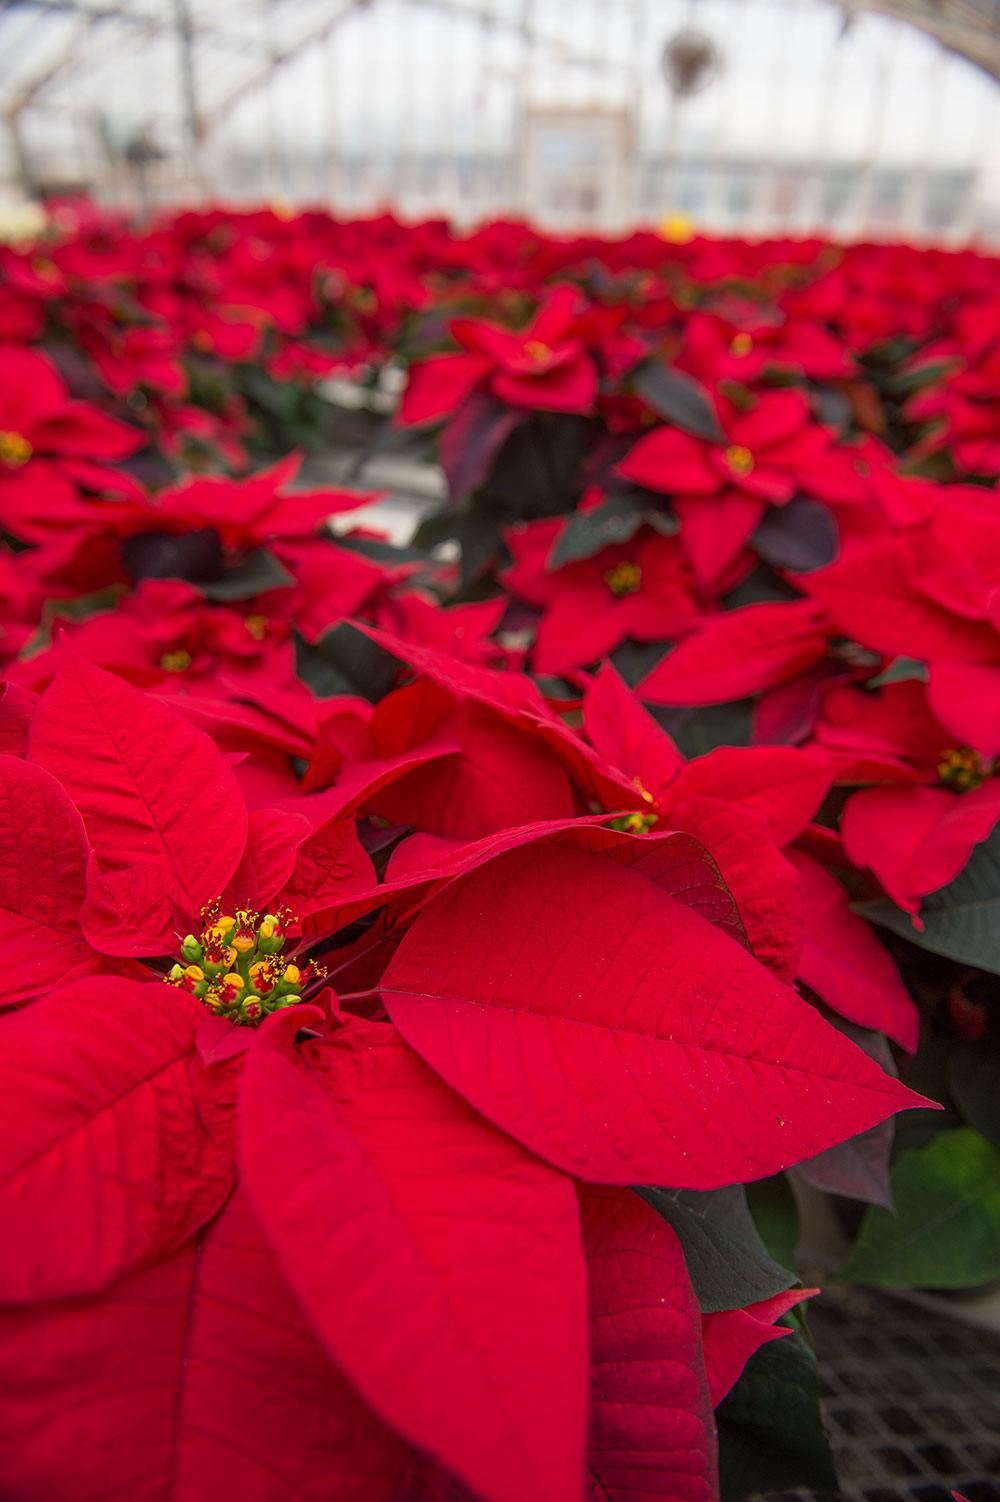 a cluster of poinsettias